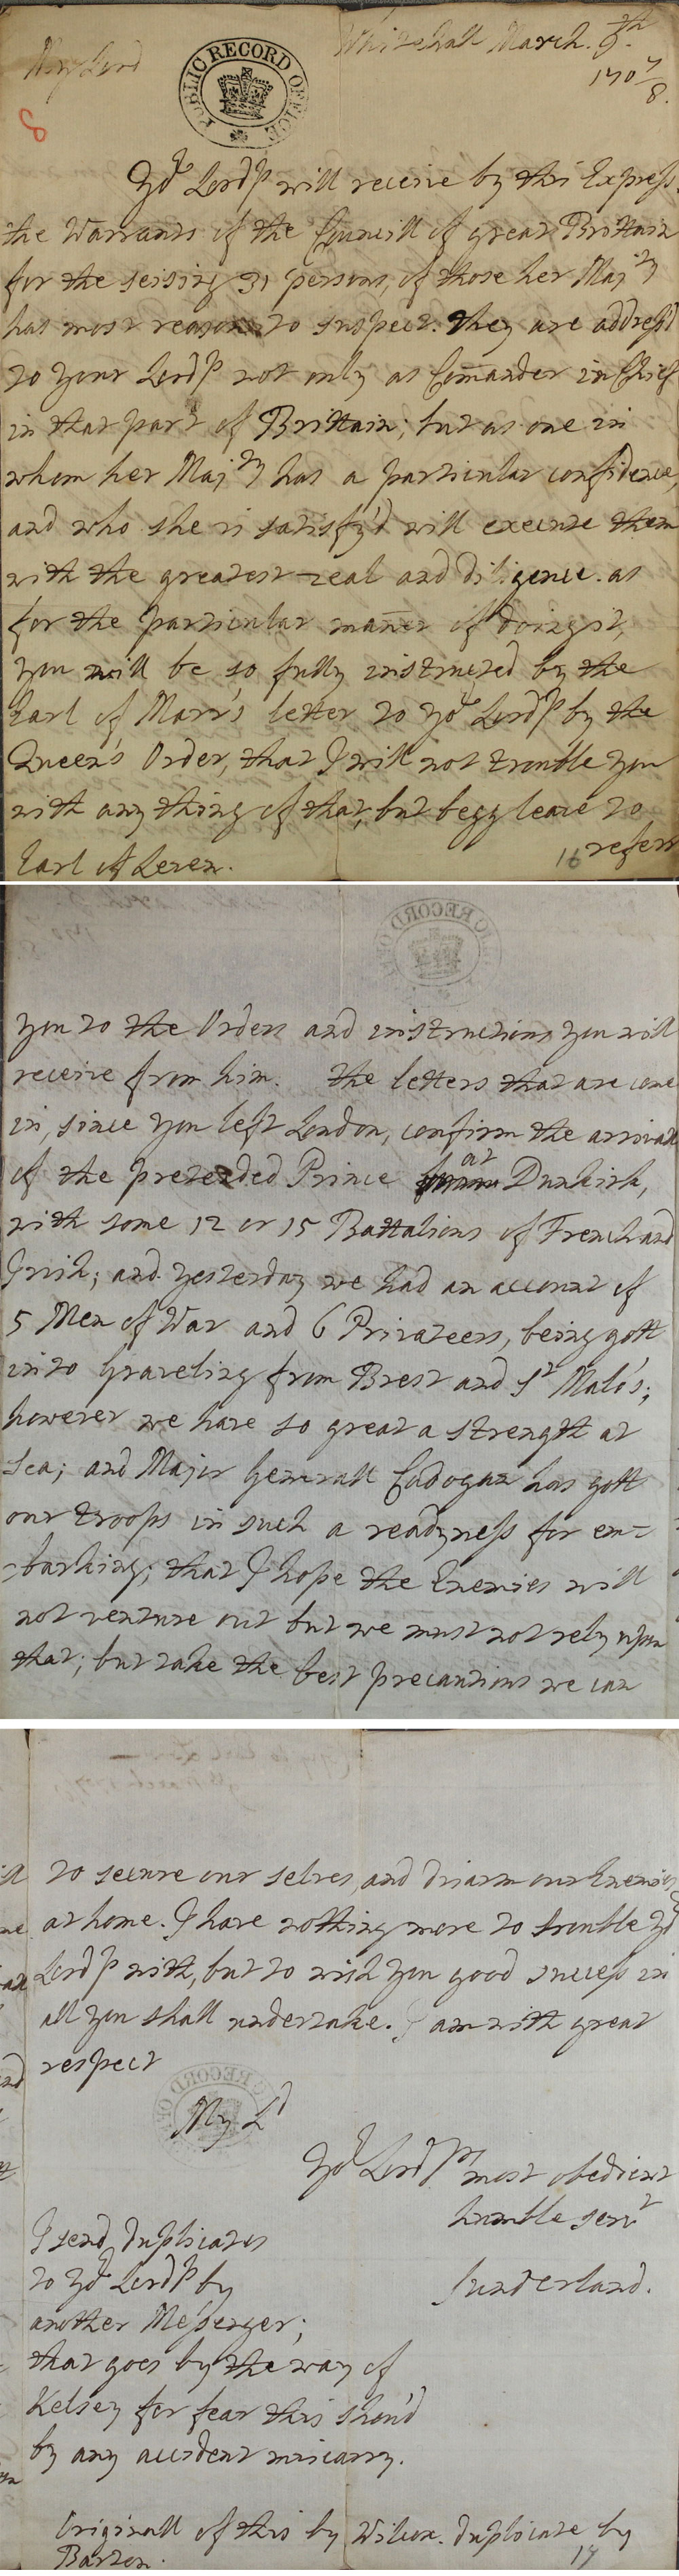 Letter from Earl of Sutherland to Earl of Leven, 9th March 1708 (SP 54/3/8)